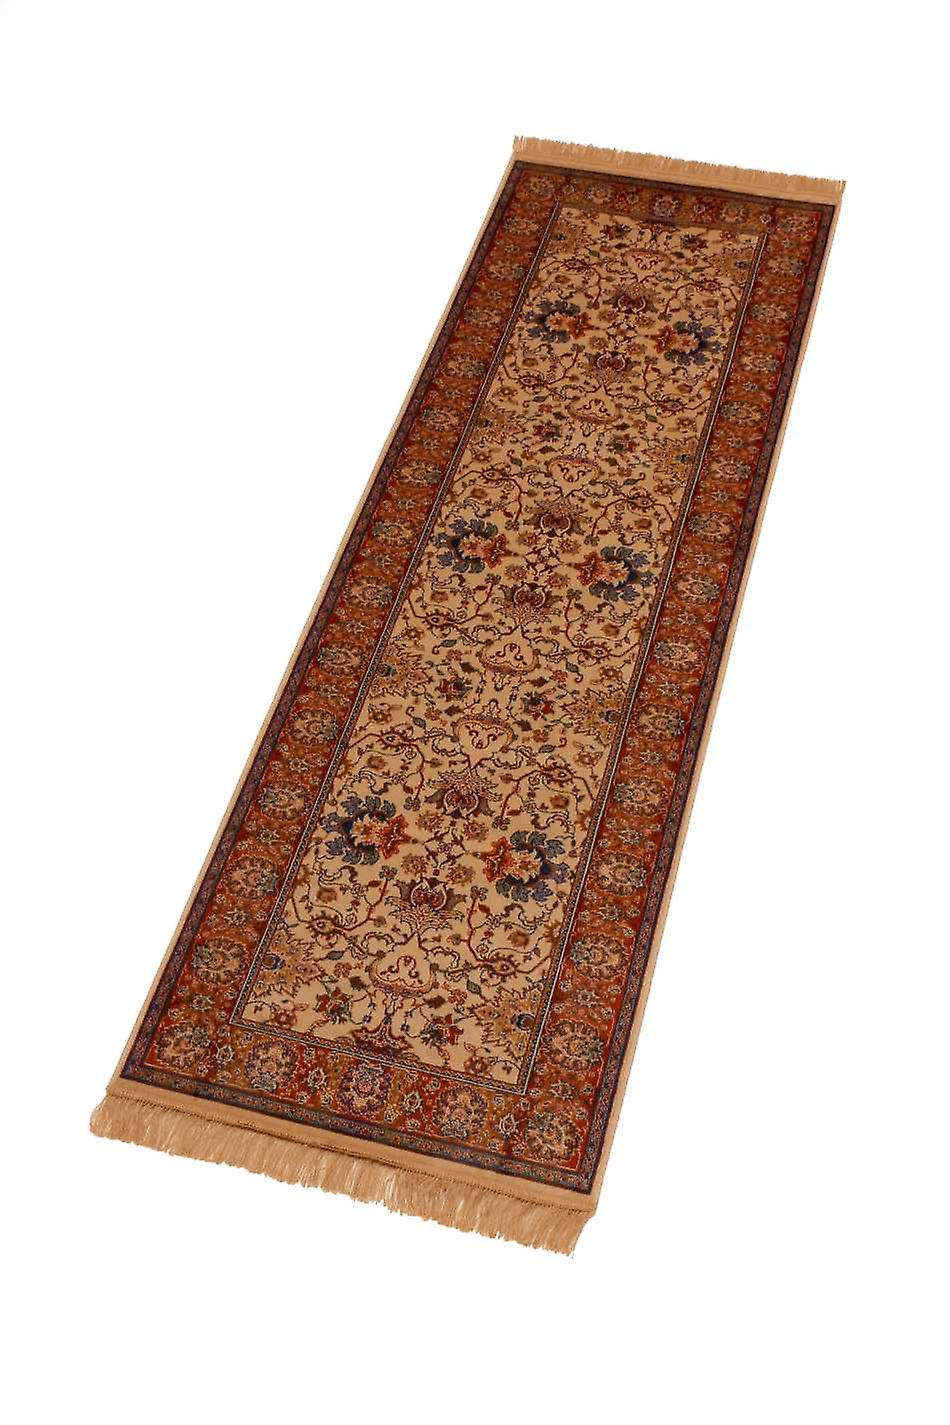 Indian Agra Artificial Faux Silk Effect Hall Runner Rugs 4620/4